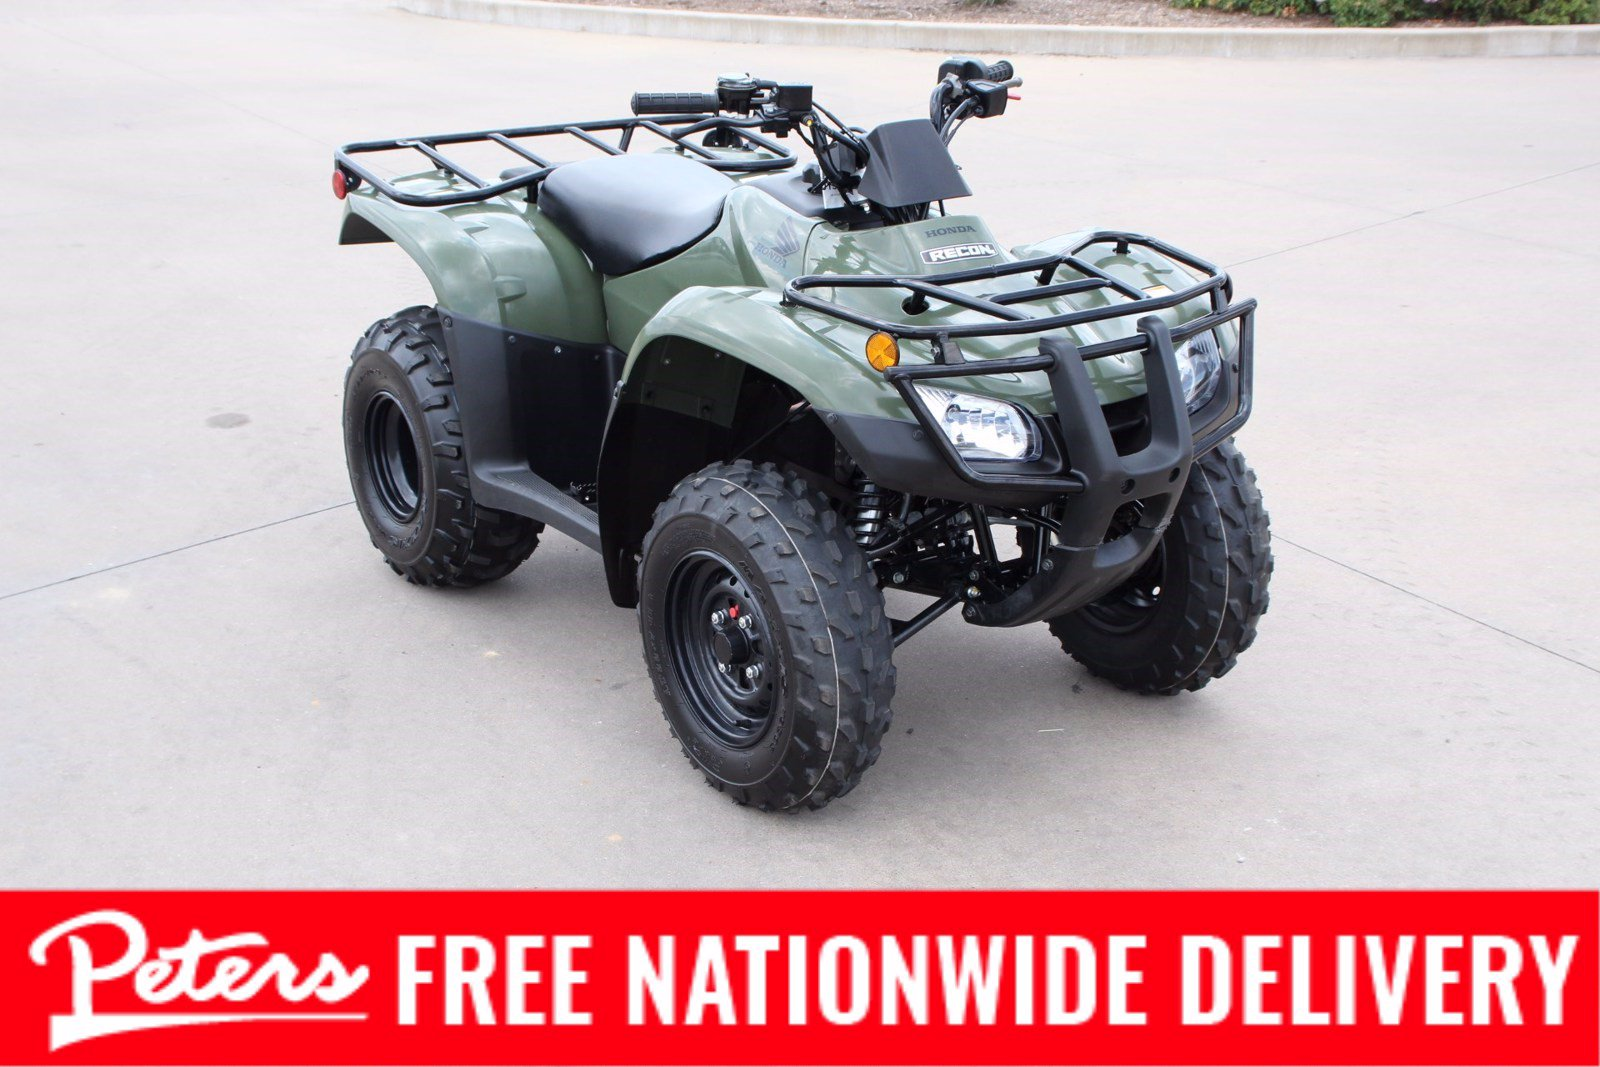 Pre-Owned 2020 Honda TRX250TE FOURTRAX RECON (ELECTRIC SHIFT)